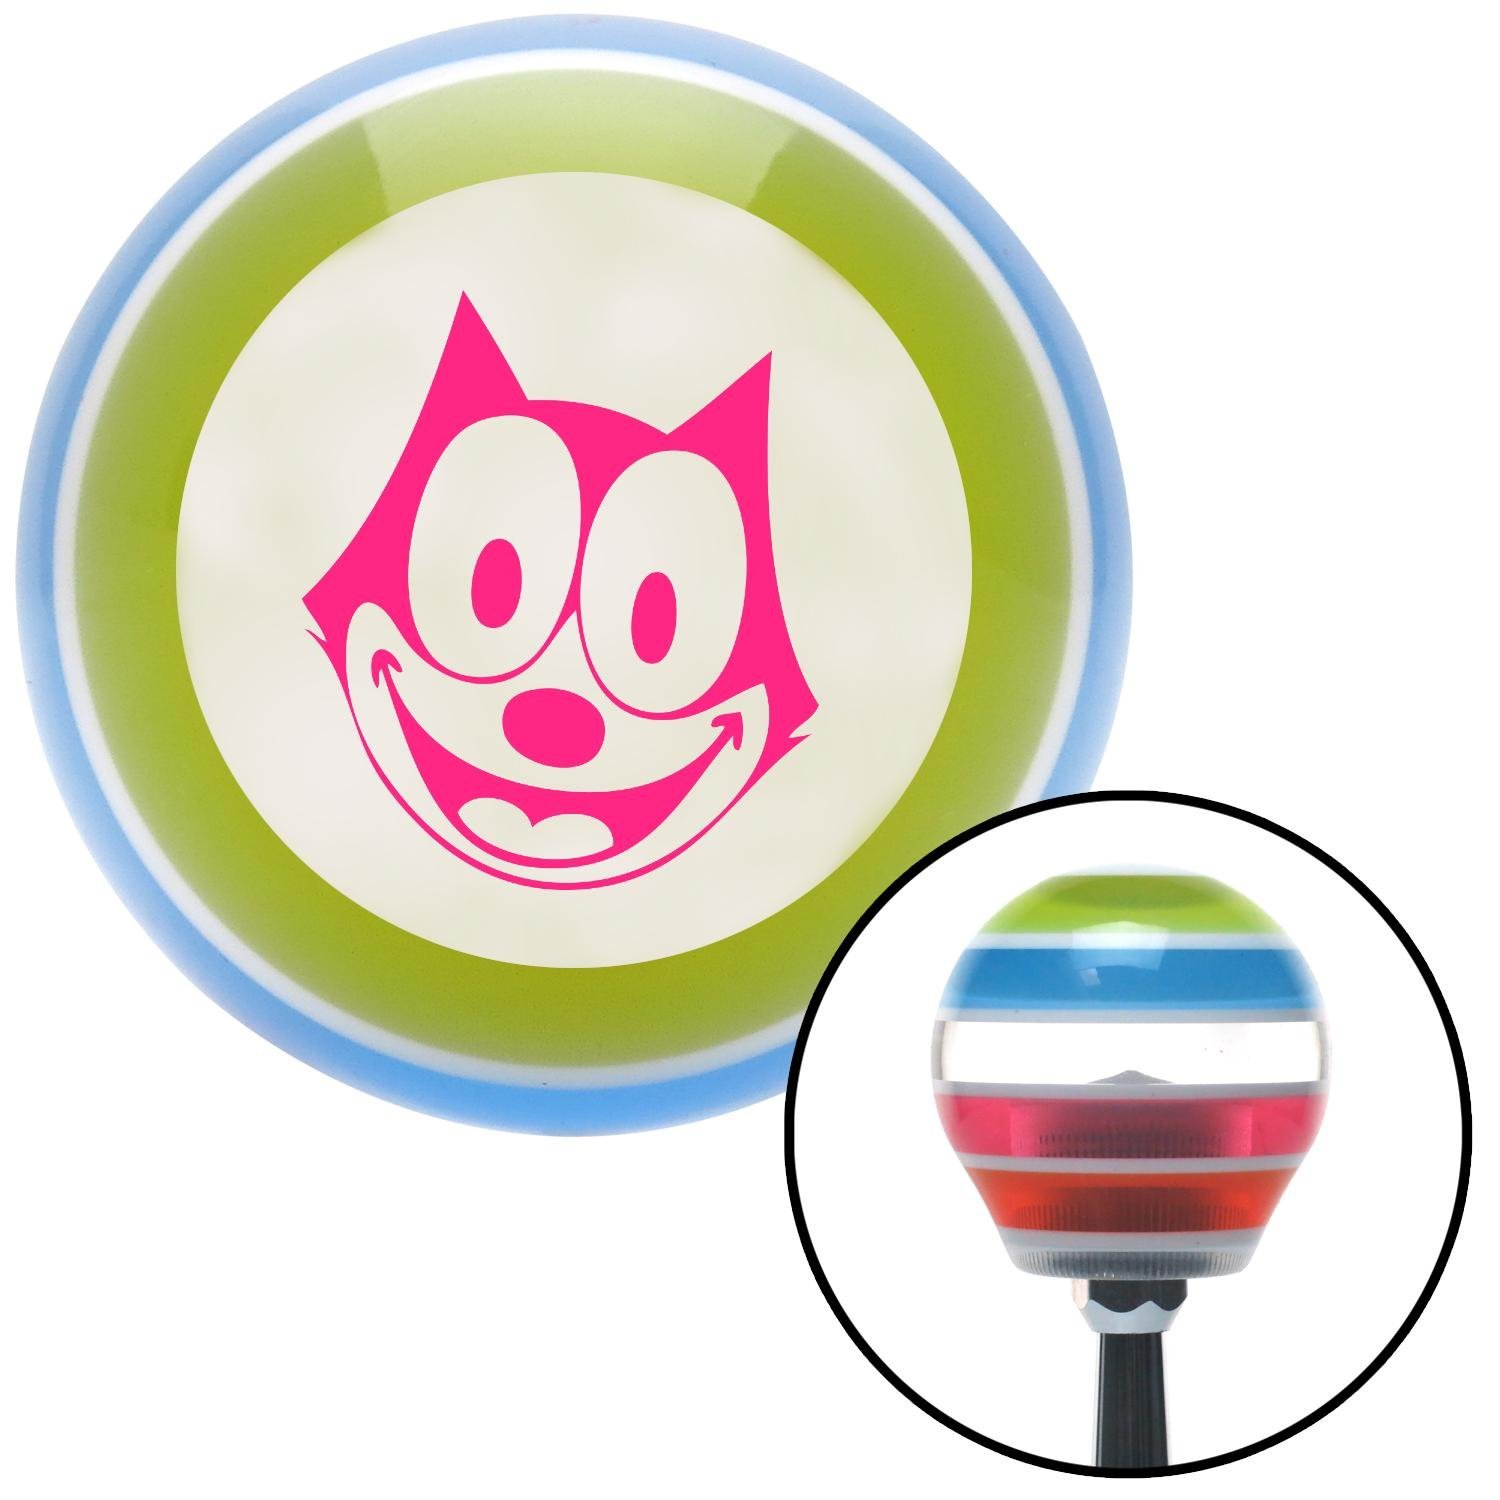 Pink Felix The Cat Smiling American Shifter 135663 Stripe Shift Knob with M16 x 1.5 Insert